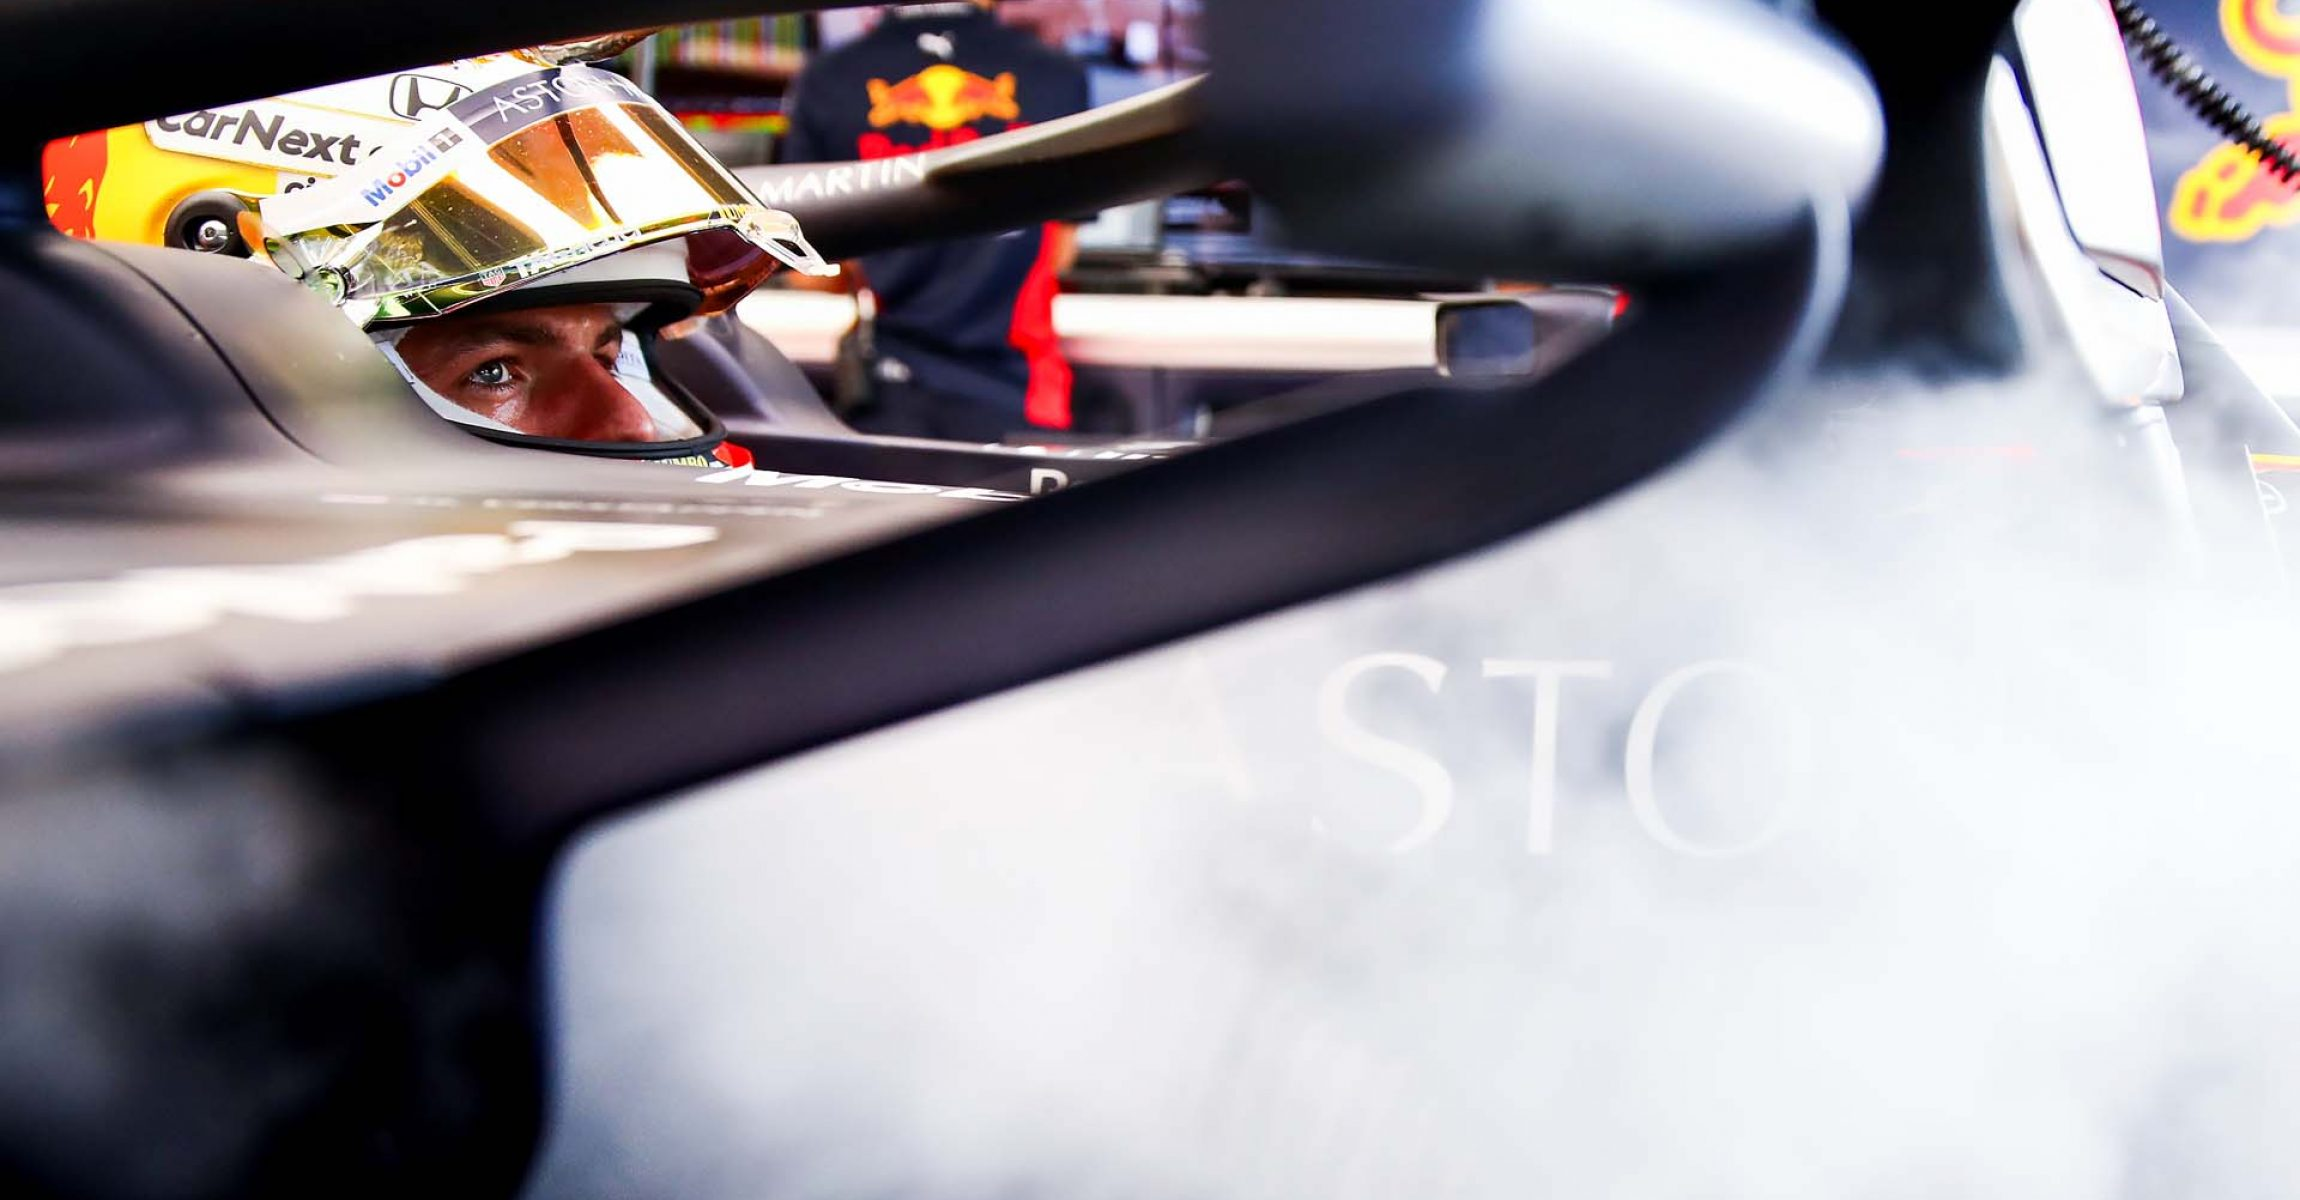 NORTHAMPTON, ENGLAND - AUGUST 08: Max Verstappen of Netherlands and Red Bull Racing prepares to drive in the garage during qualifying for the F1 70th Anniversary Grand Prix at Silverstone on August 08, 2020 in Northampton, England. (Photo by Mark Thompson/Getty Images)